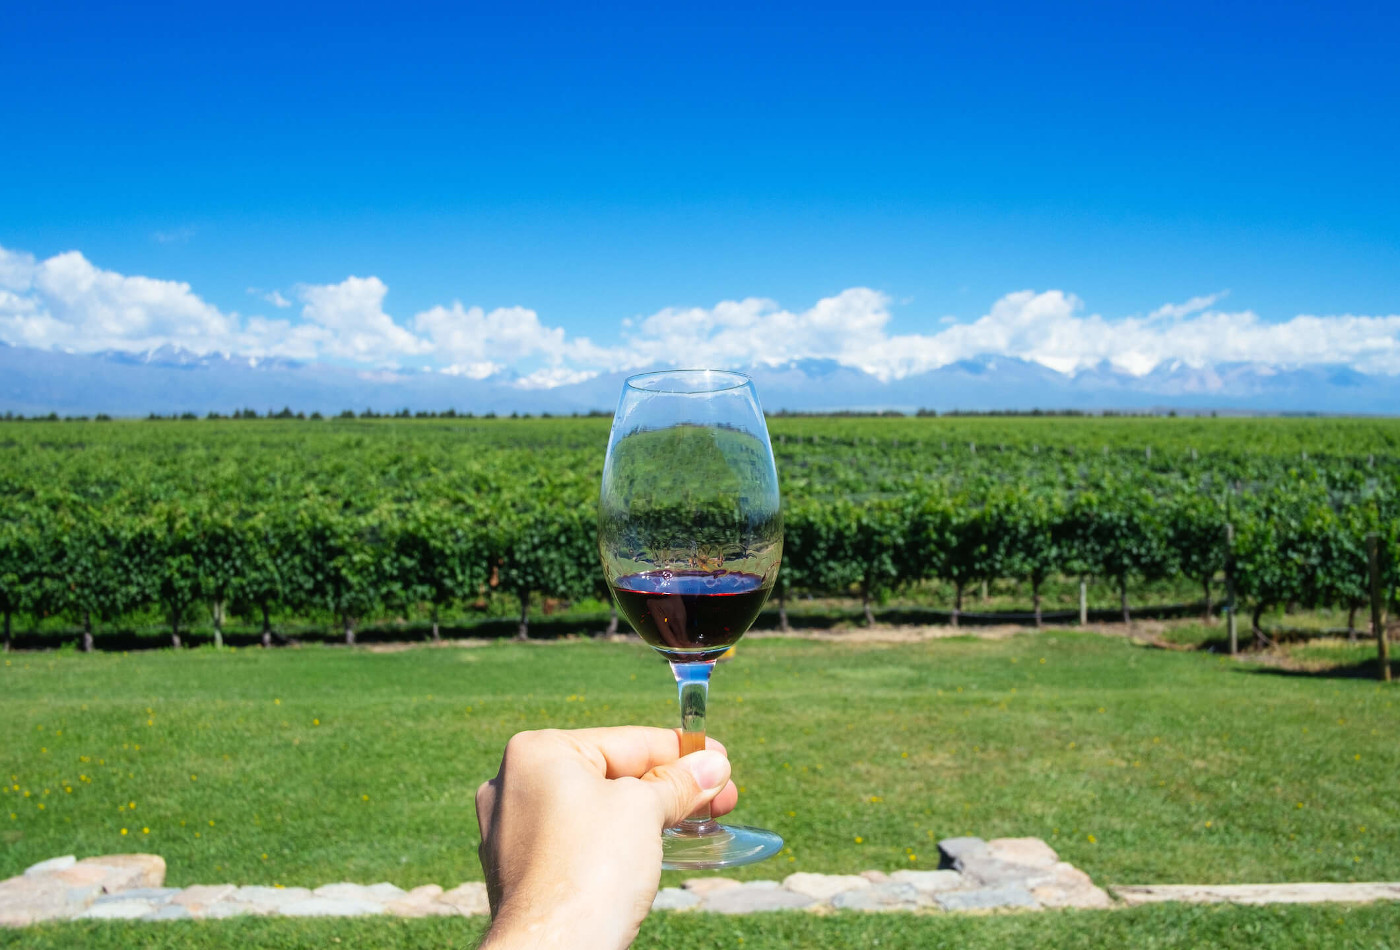 Glass of wine held up in front of vineyard